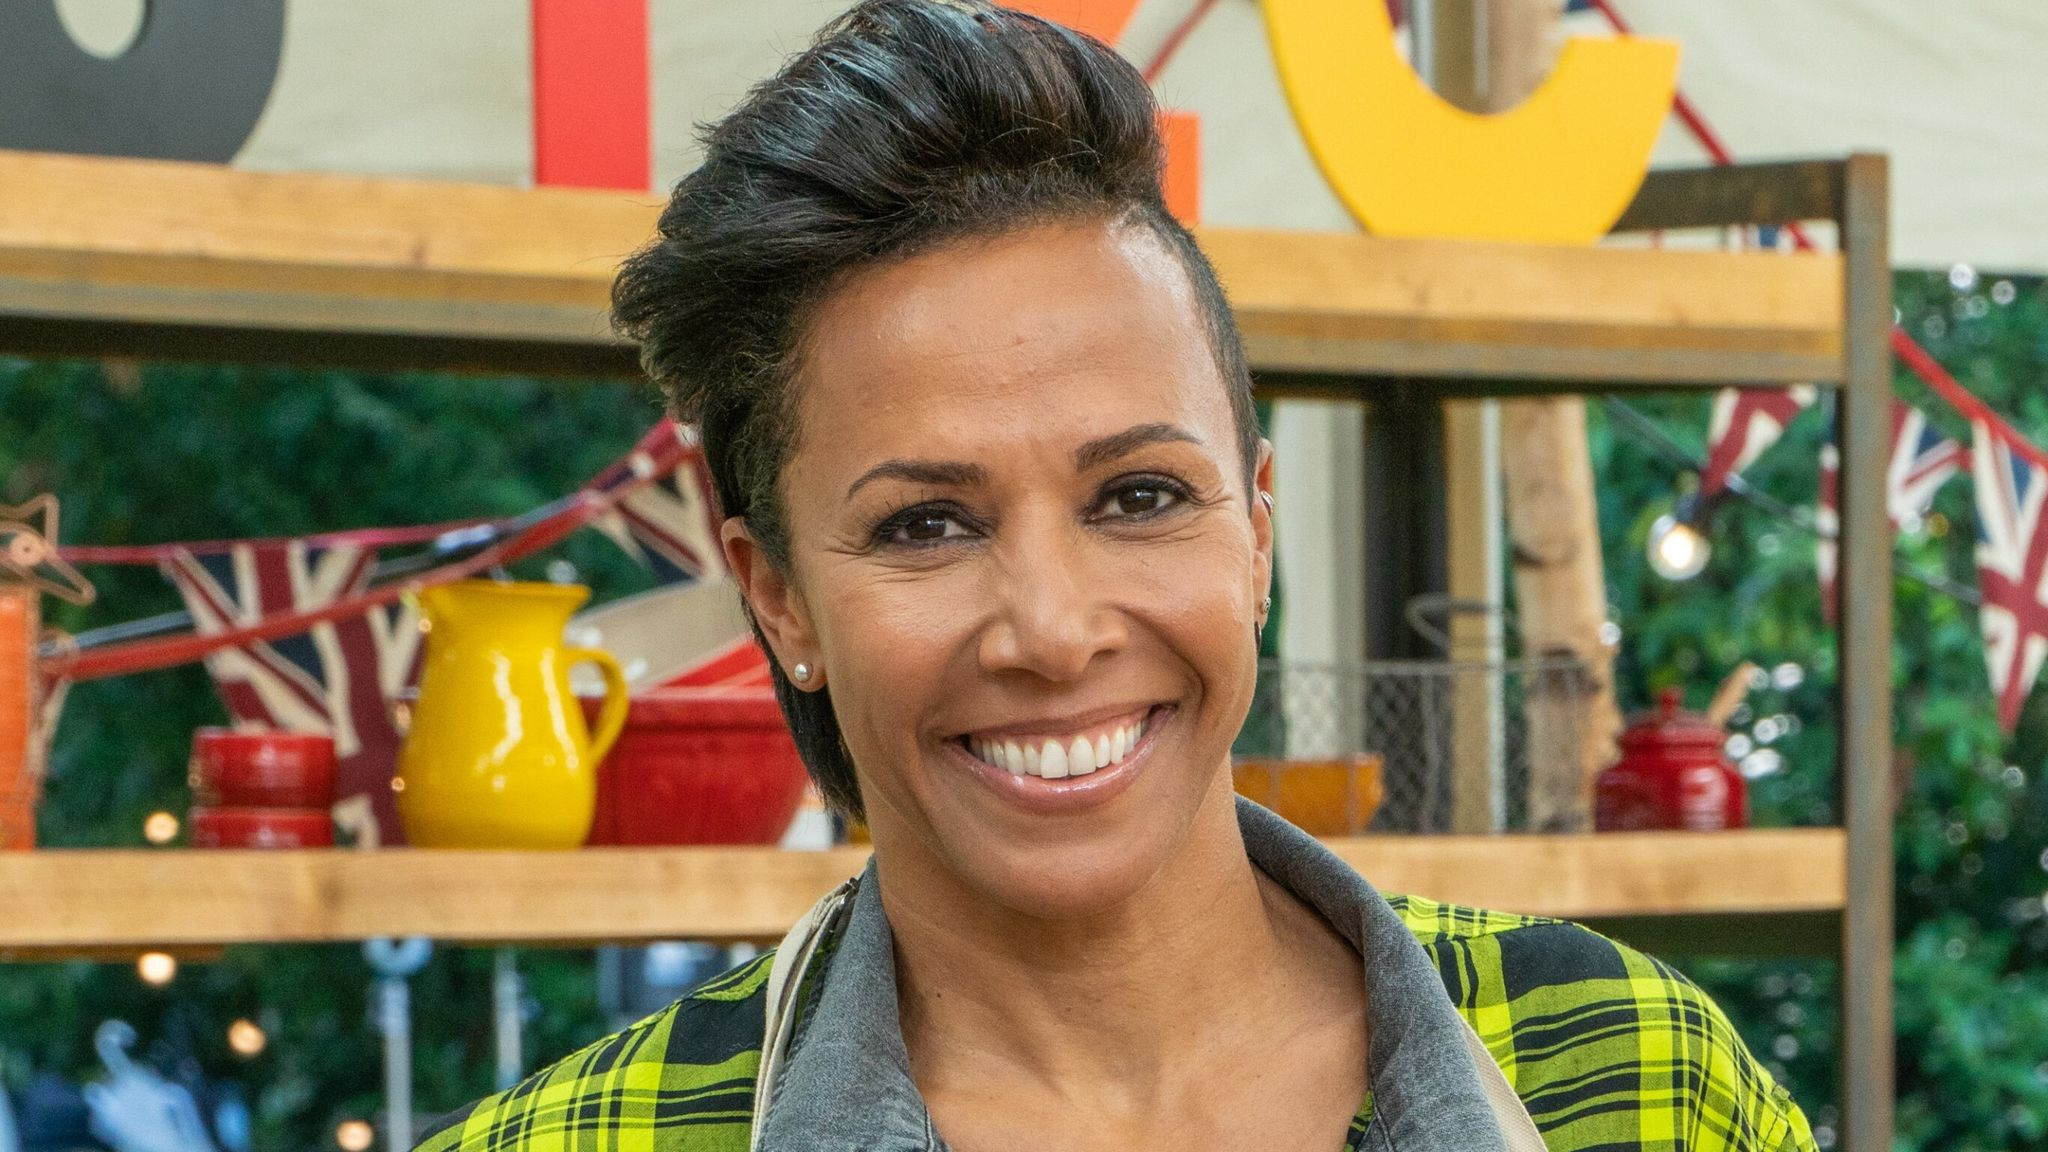 Dame Kelly Holmes is taking part in The Great Celebrity Bake Off. Pic: Channel 4